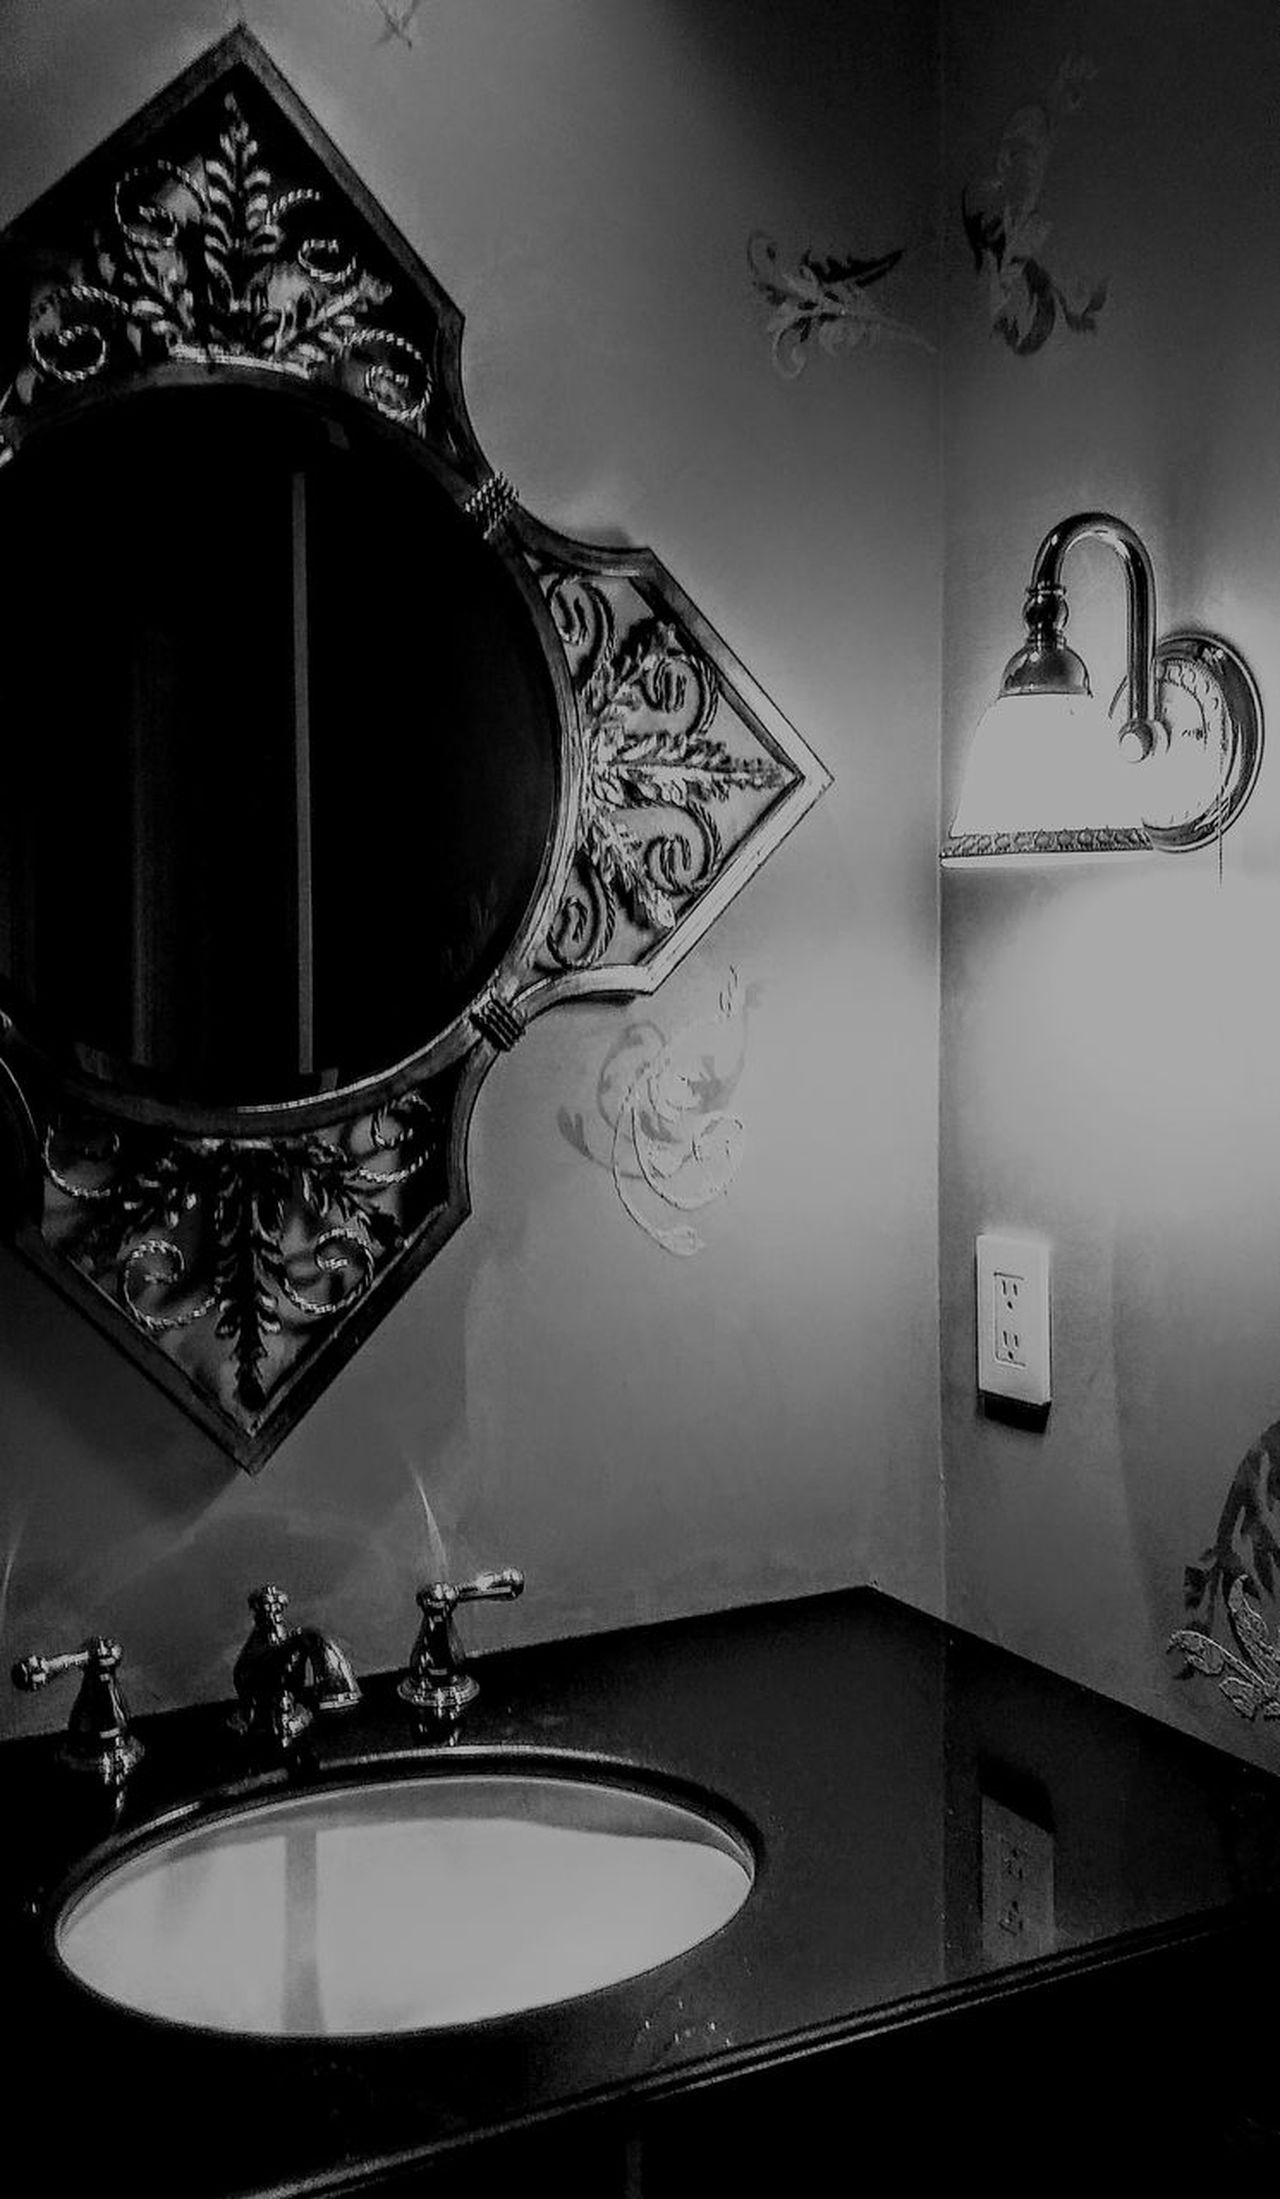 Mirror Bathroom Domestic Bathroom Indoors  Faucet Luxury Domestic Room Water Architecture Hygiene No People Bathroom Sink Day Sink And Counter Mirrored Image Beautiful Home Home Showcase Interior Irwin Collection Architecture EyeEm Best Shots Home Interior EyeEm Gallery Blackandwhite Photography Irwin Collection